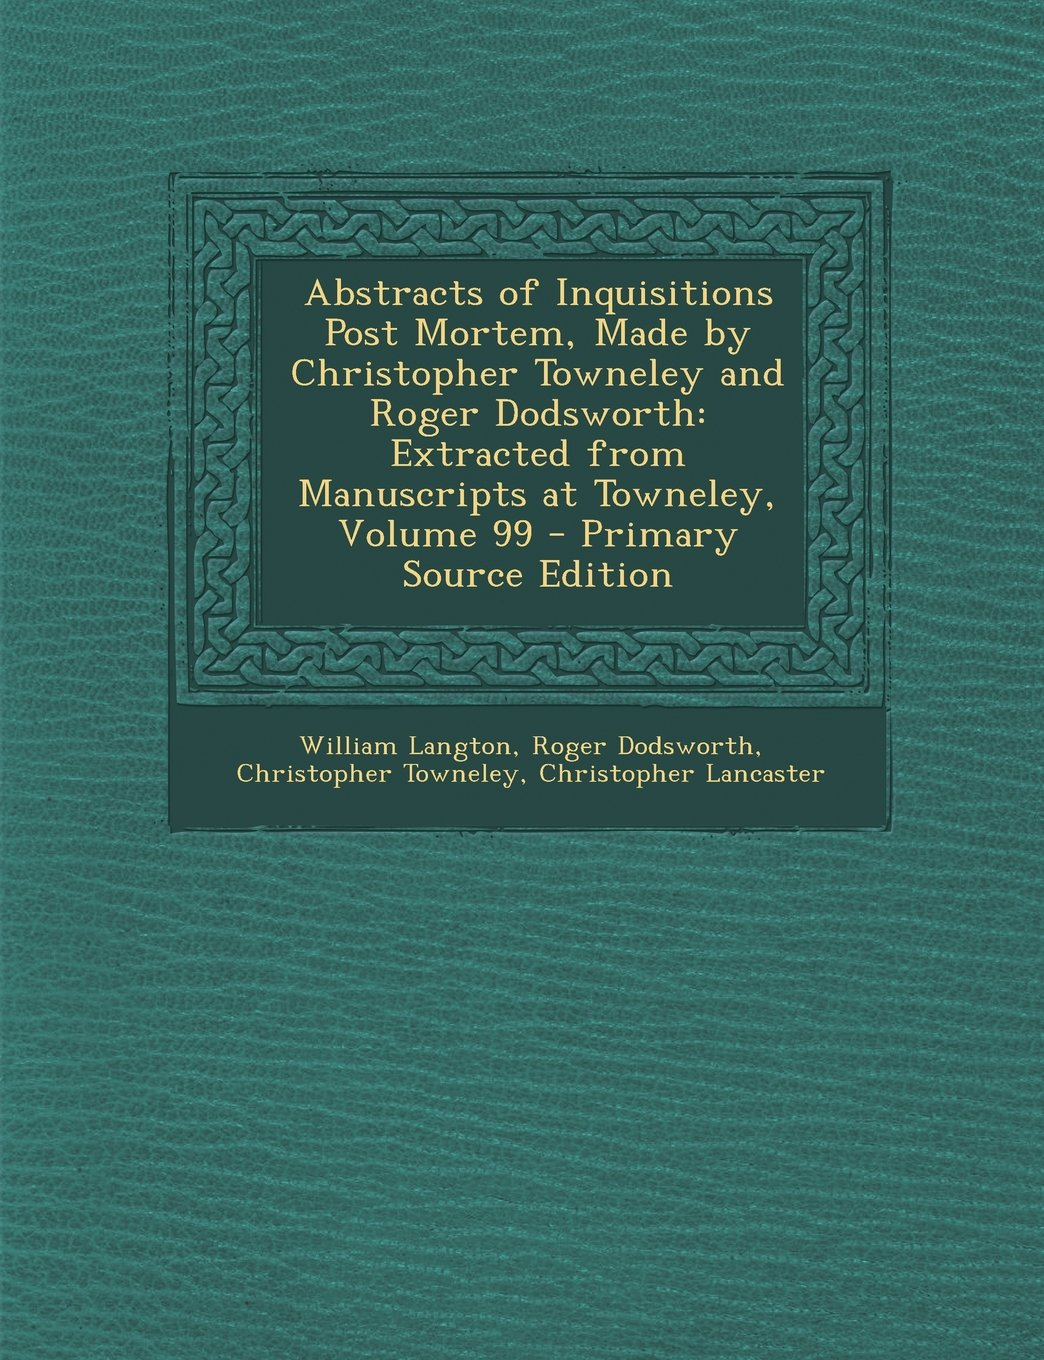 Download Abstracts of Inquisitions Post Mortem, Made by Christopher Towneley and Roger Dodsworth: Extracted from Manuscripts at Towneley, Volume 99 - Primary Source Edition PDF